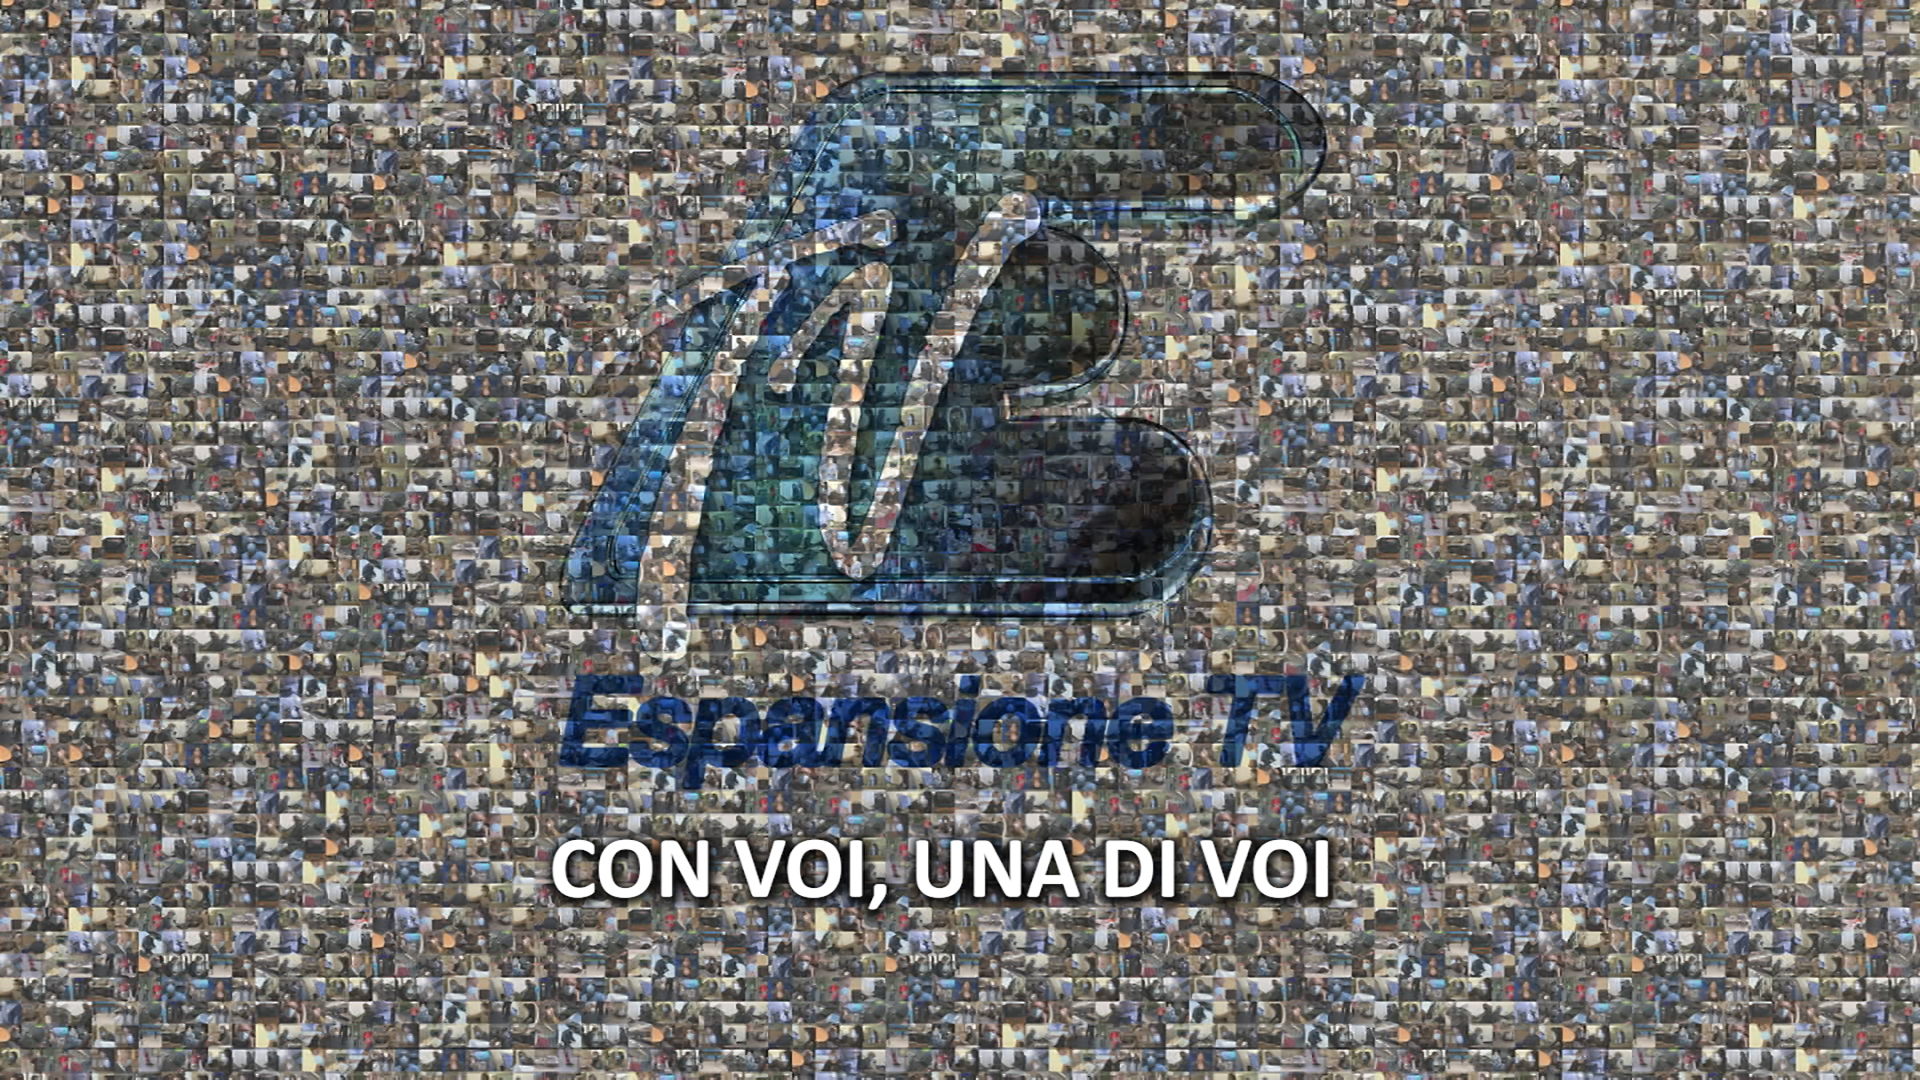 Espansione Tv Banner Newsline 1920x1080 - IP Tv. Disney sfida i giganti Netflix e Amazon Prime. 2019 boom in borsa